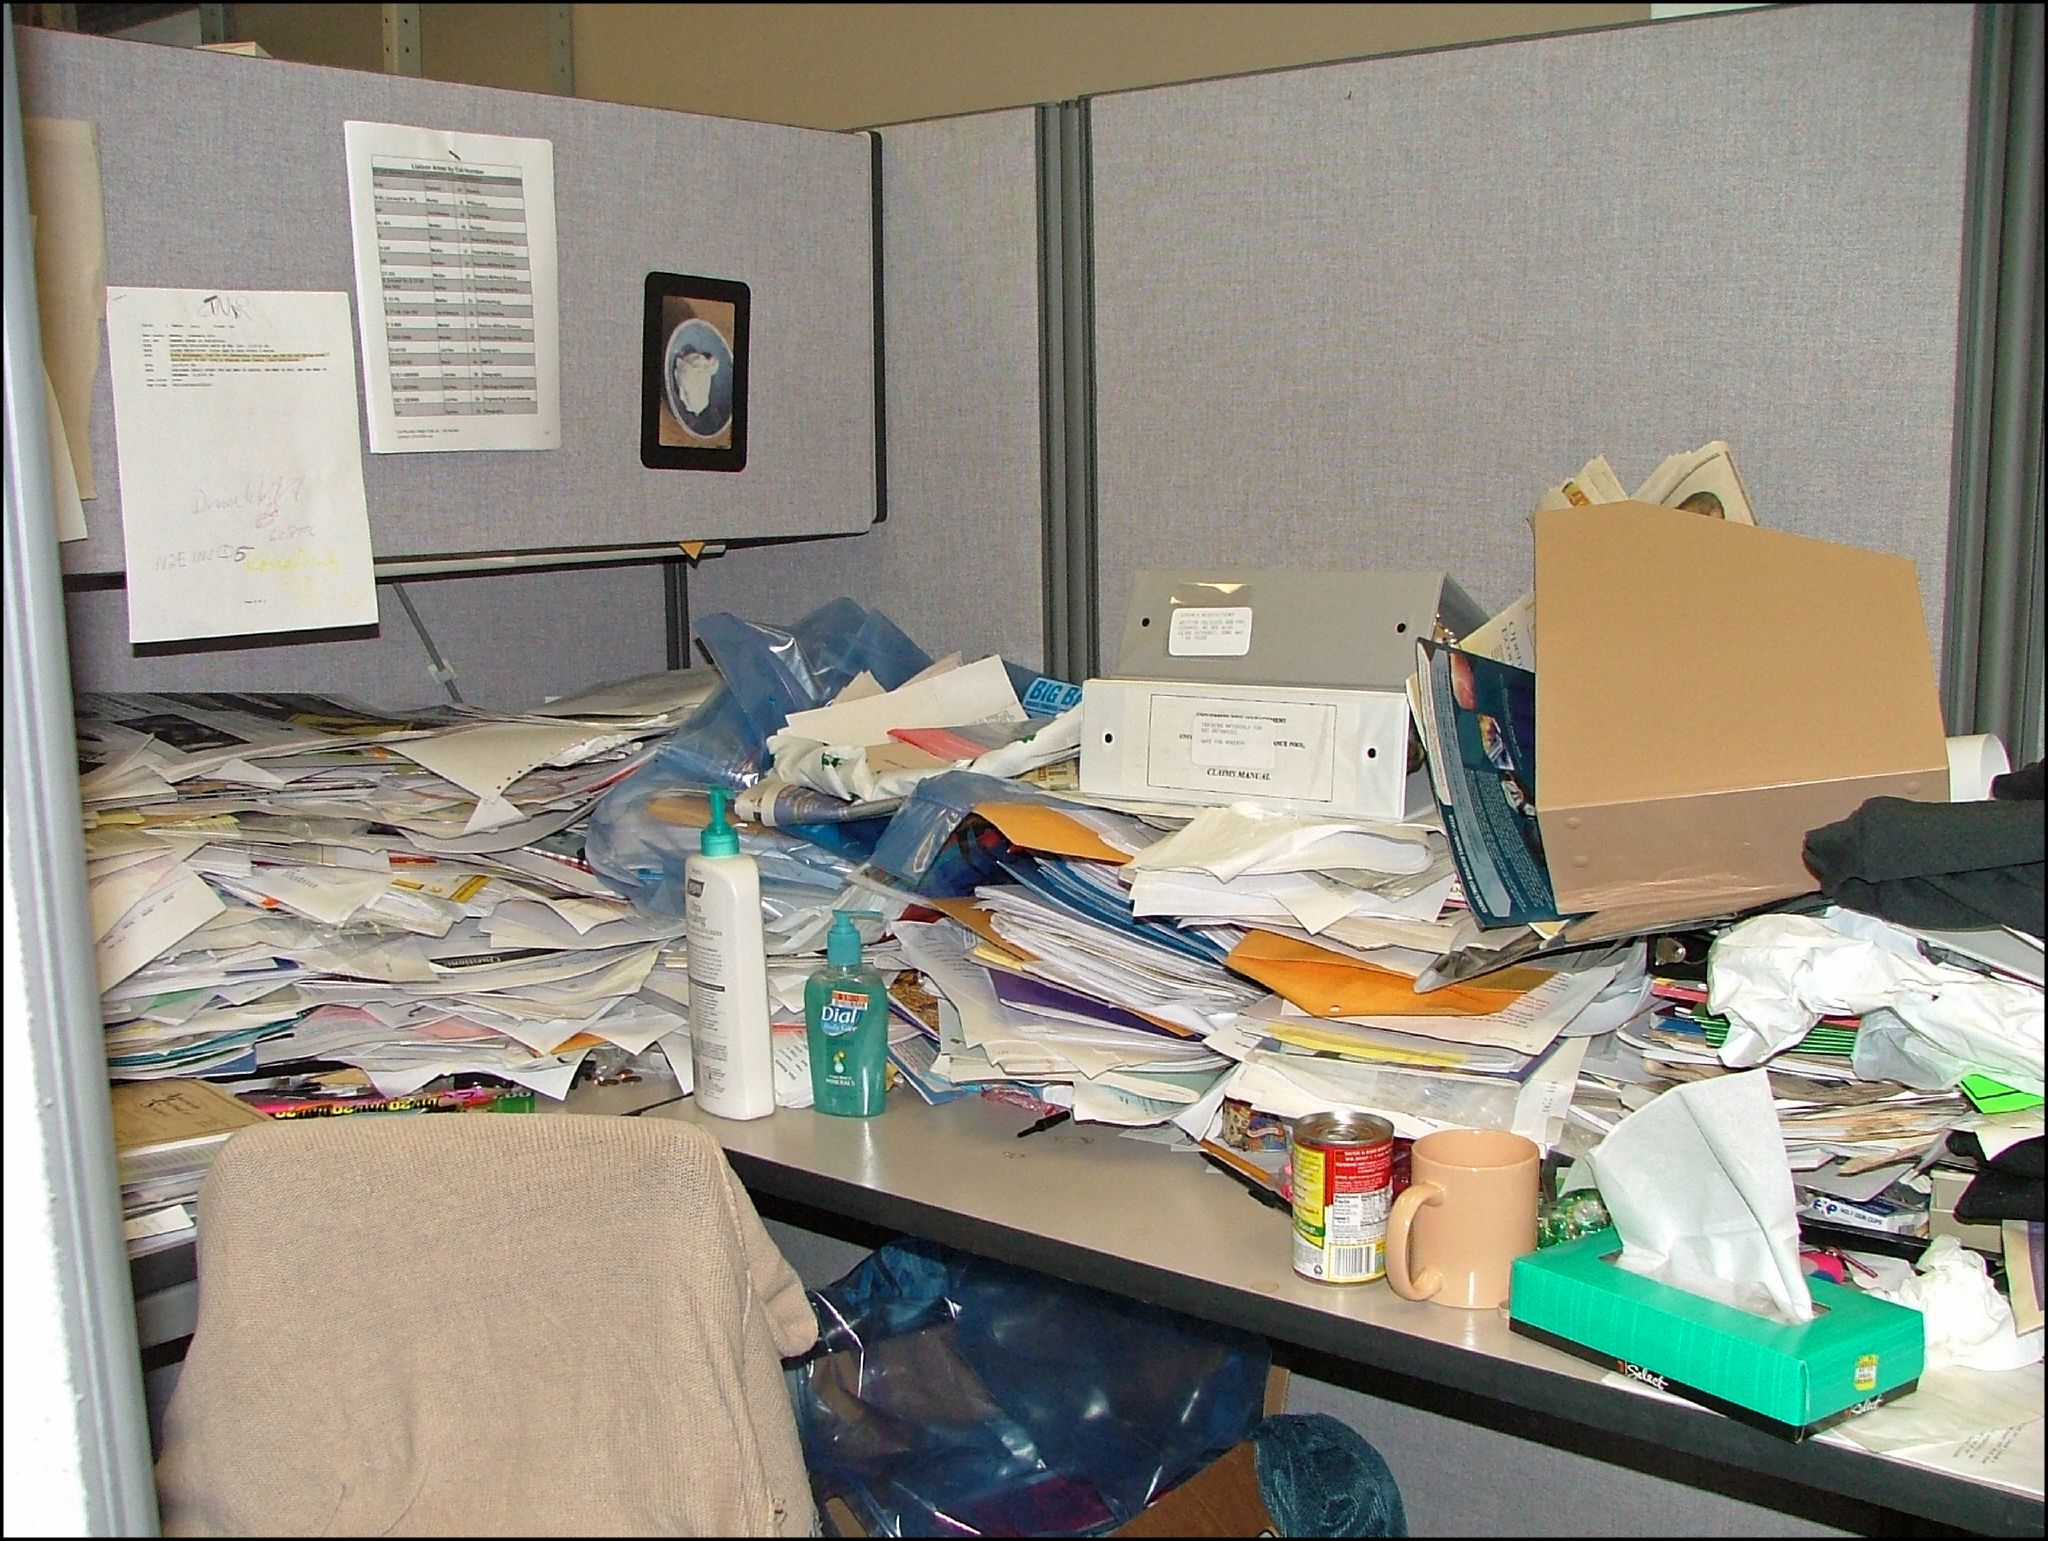 Messy Office Cubicle Flickr Photo Sharing